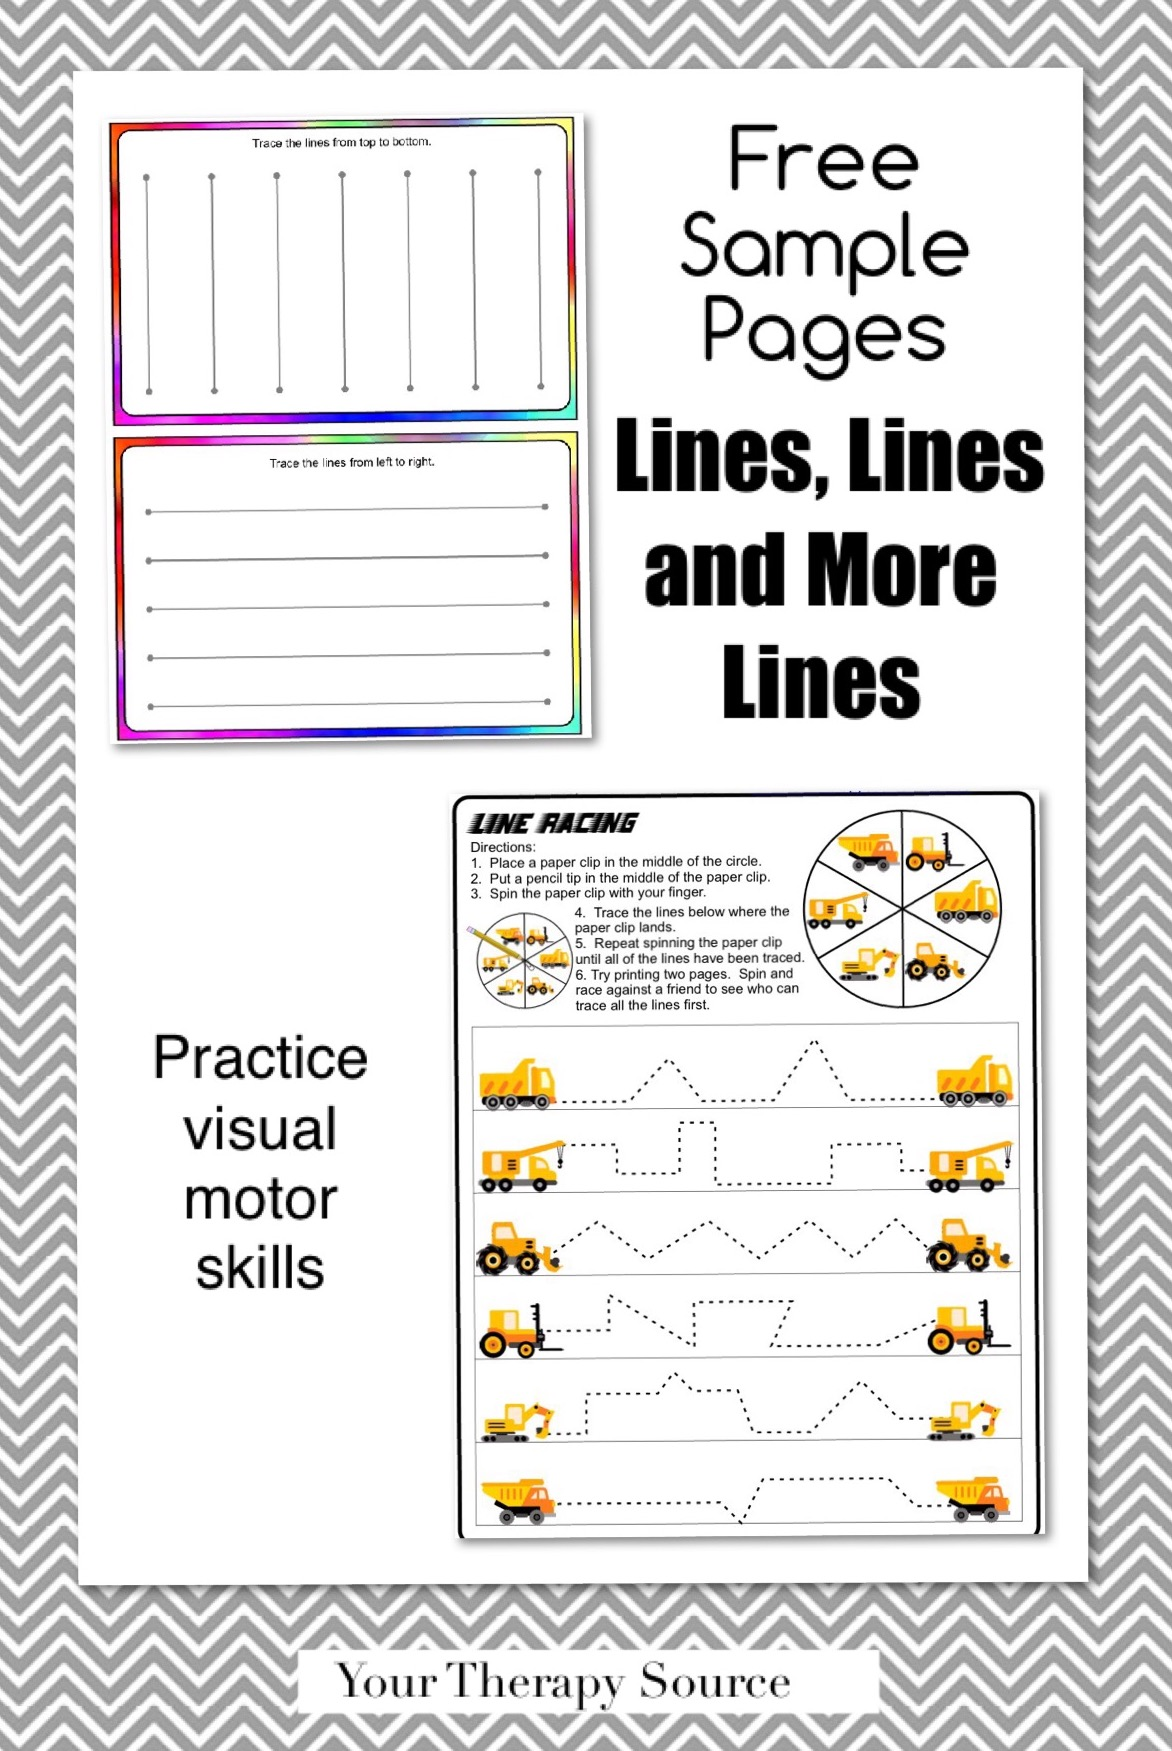 lines freebie from https://yourtherapysource.com/linesfreebie.html